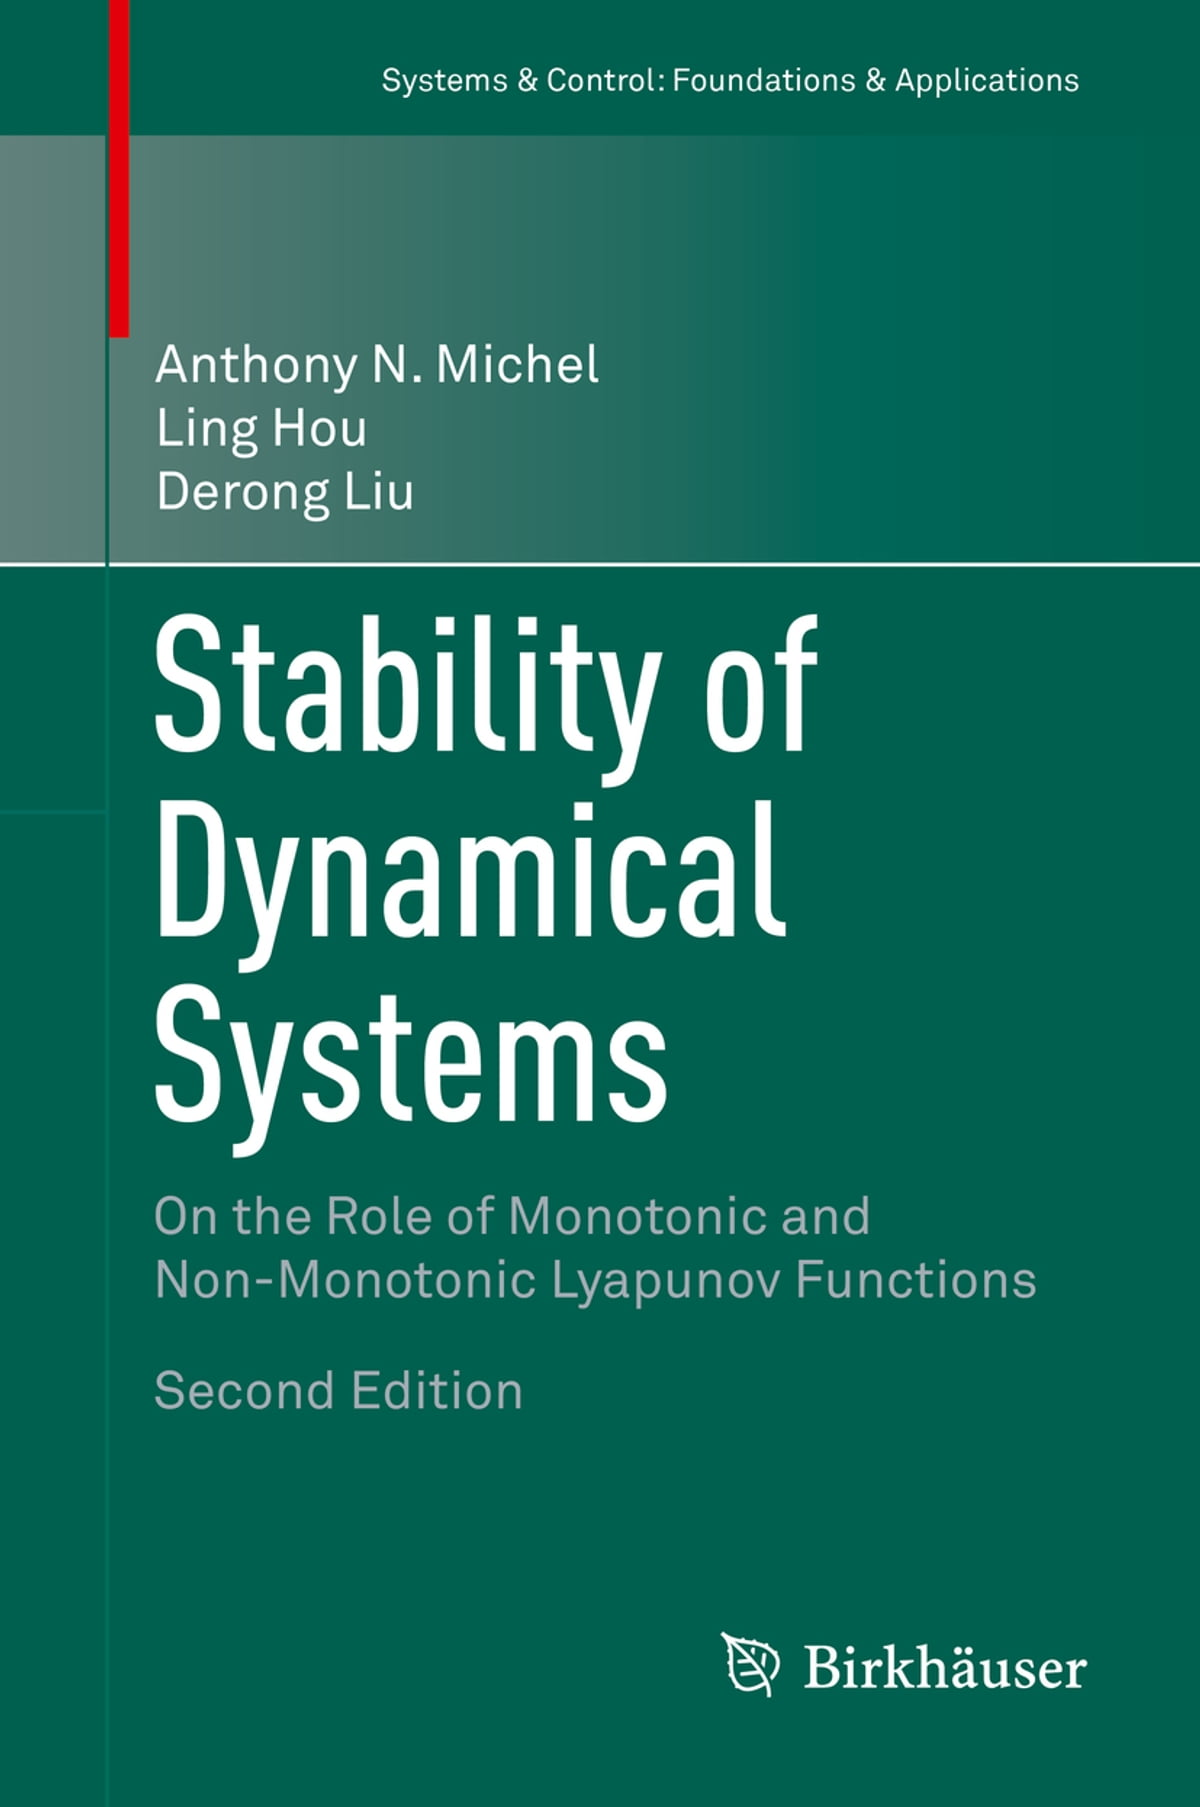 Stability and Control of Dynamical Systems with Applications: A Tribute to Antho